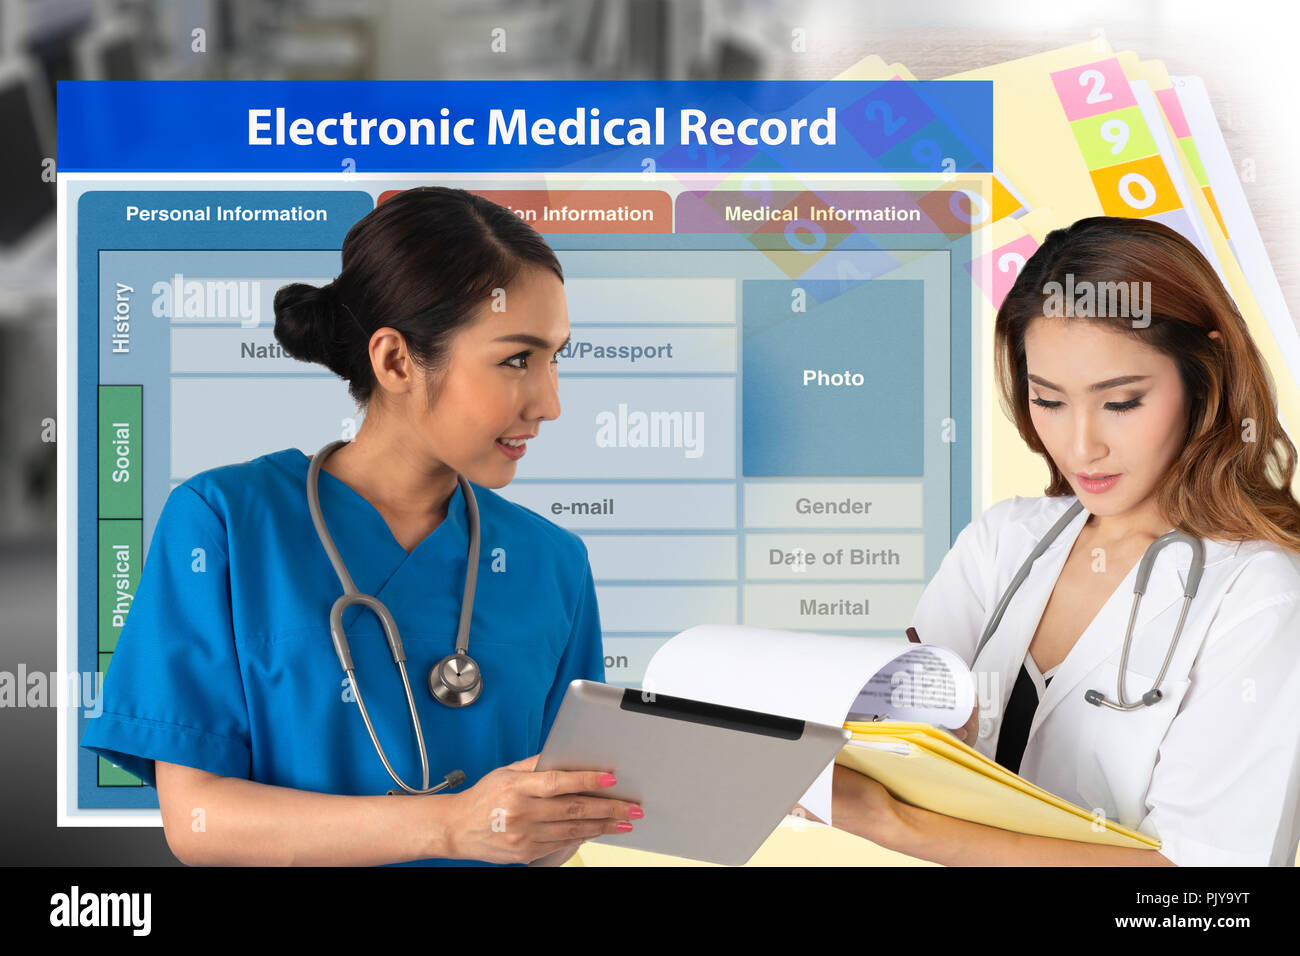 Two female doctors showing change of medical record technology from paper work to electronic medical record. - Stock Image